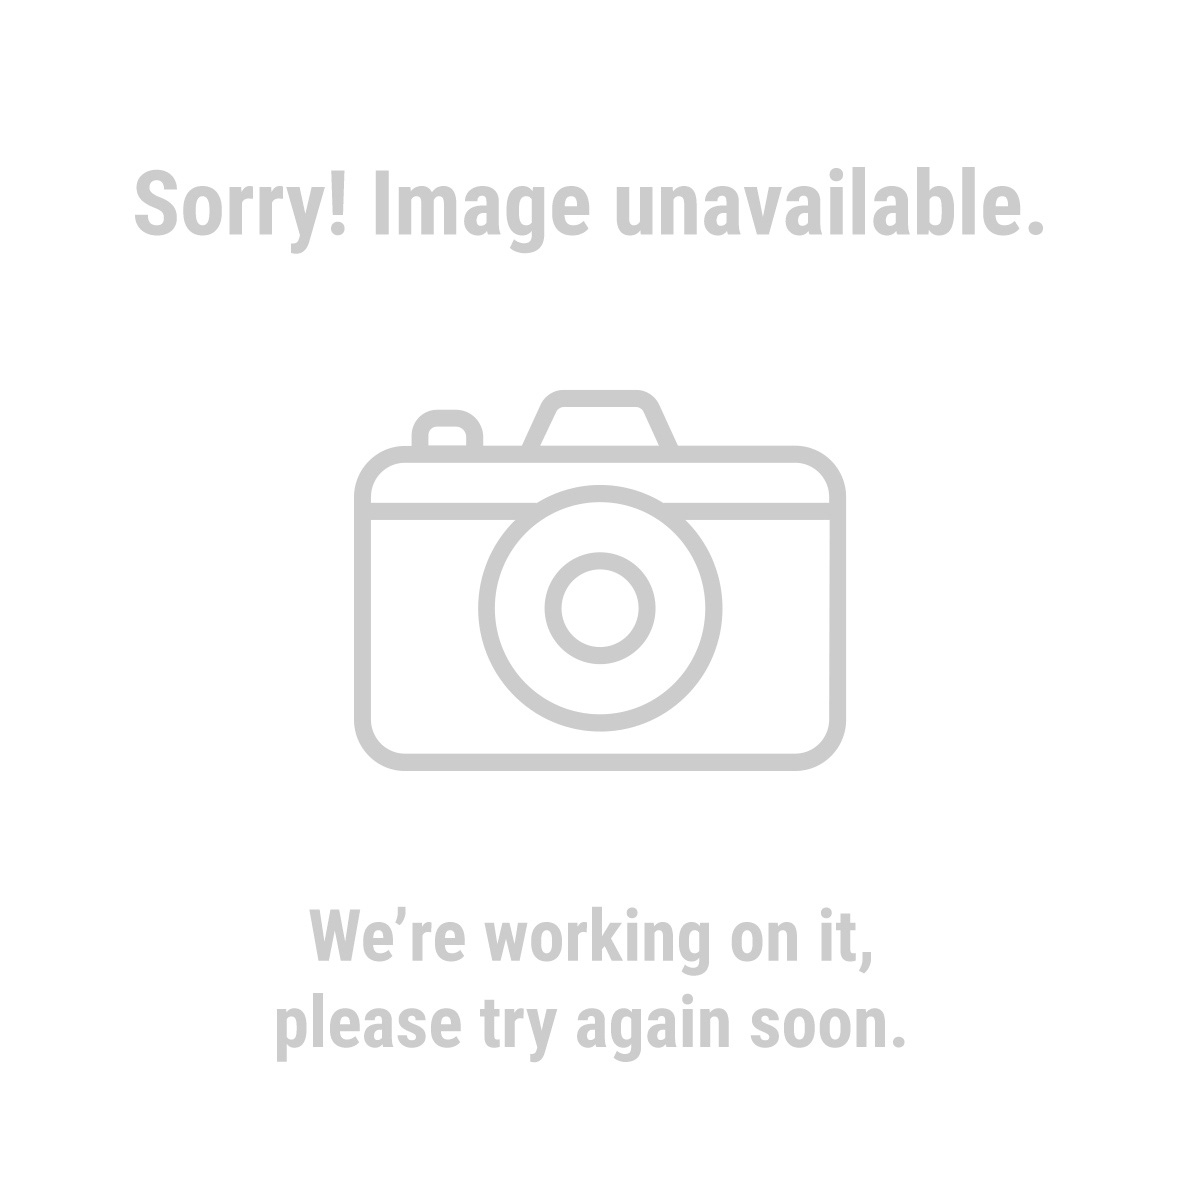 Central Pneumatic® 61980 25 ft. x 1/4 in. Coiled Polyurethane Air Hose